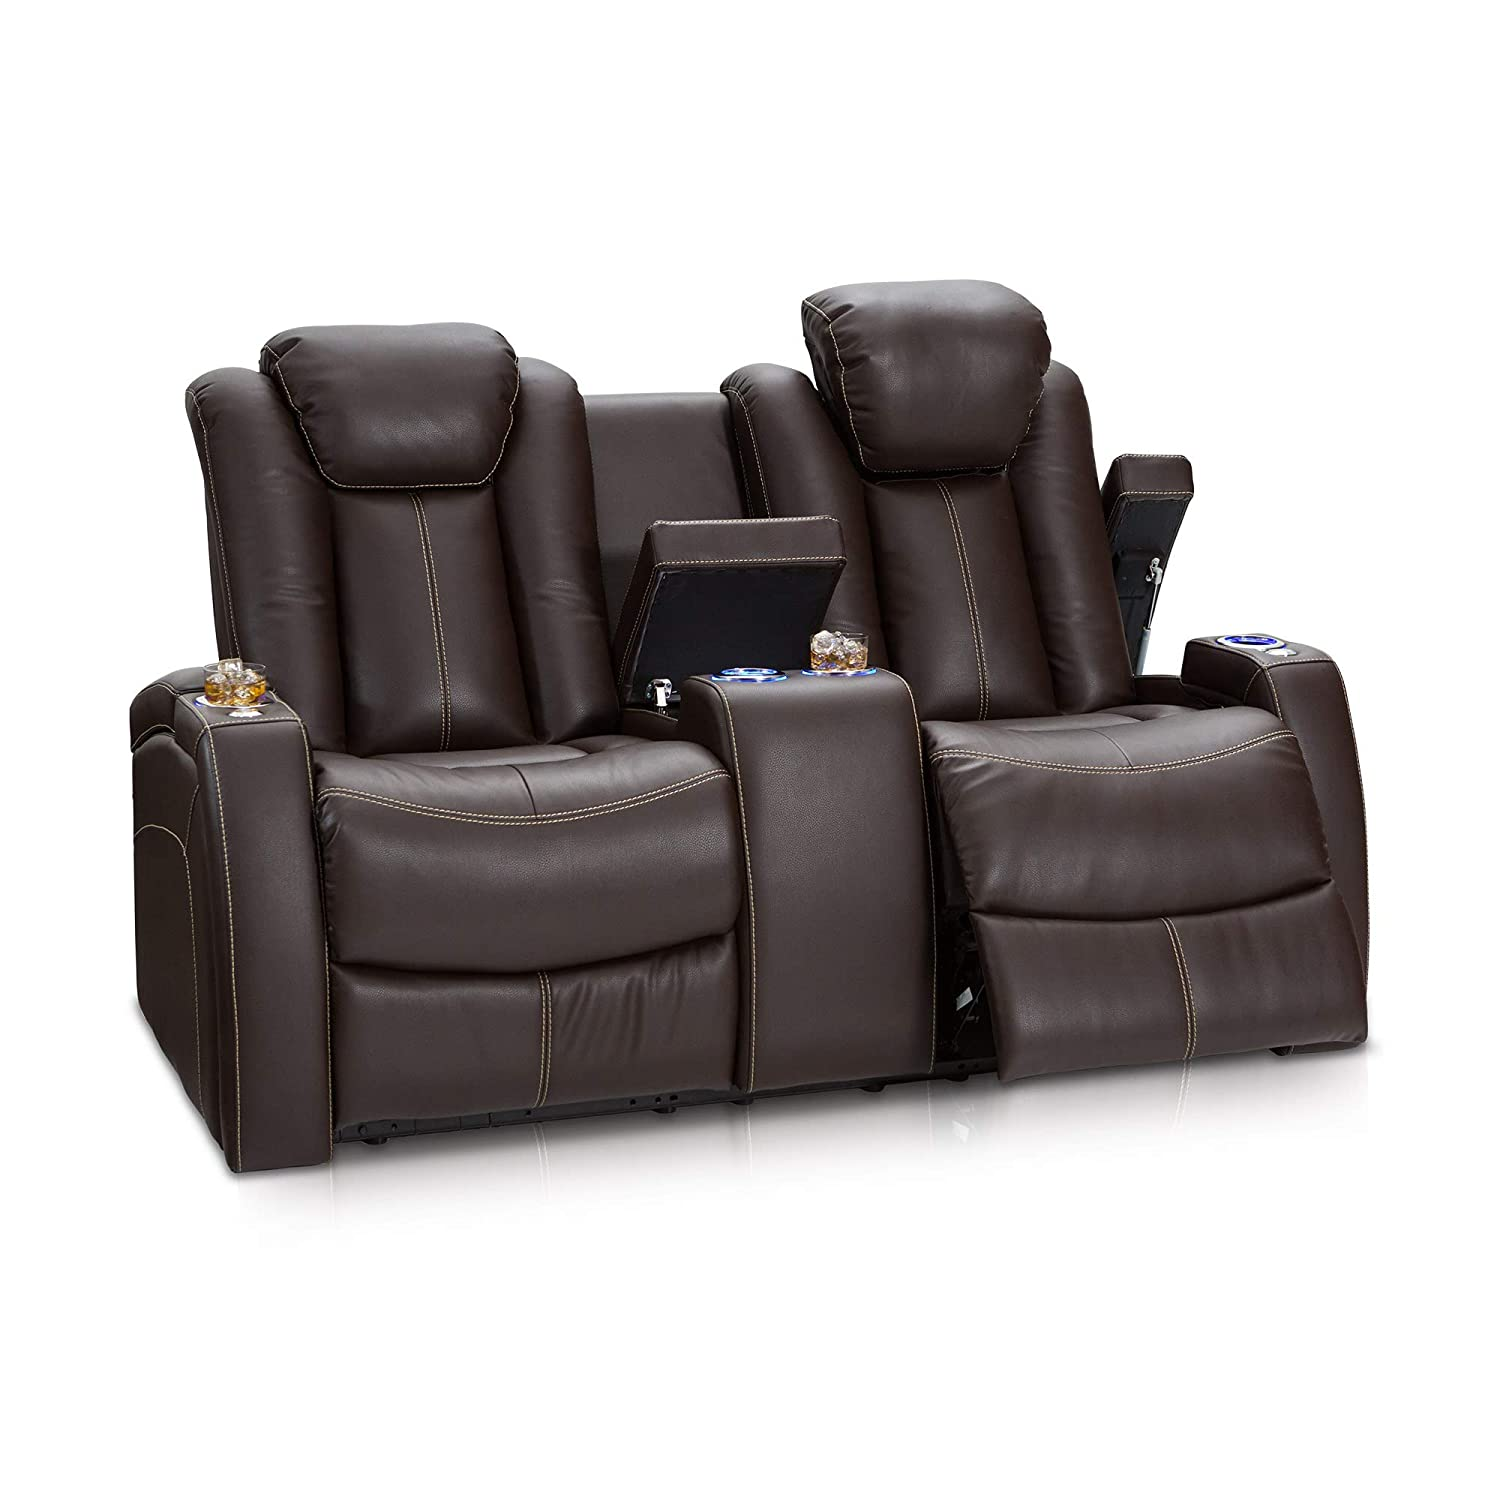 Seatcraft omega home theater seating leather gel power recline loveseat with adjustable powered headrests center storage console and lighted cup holders